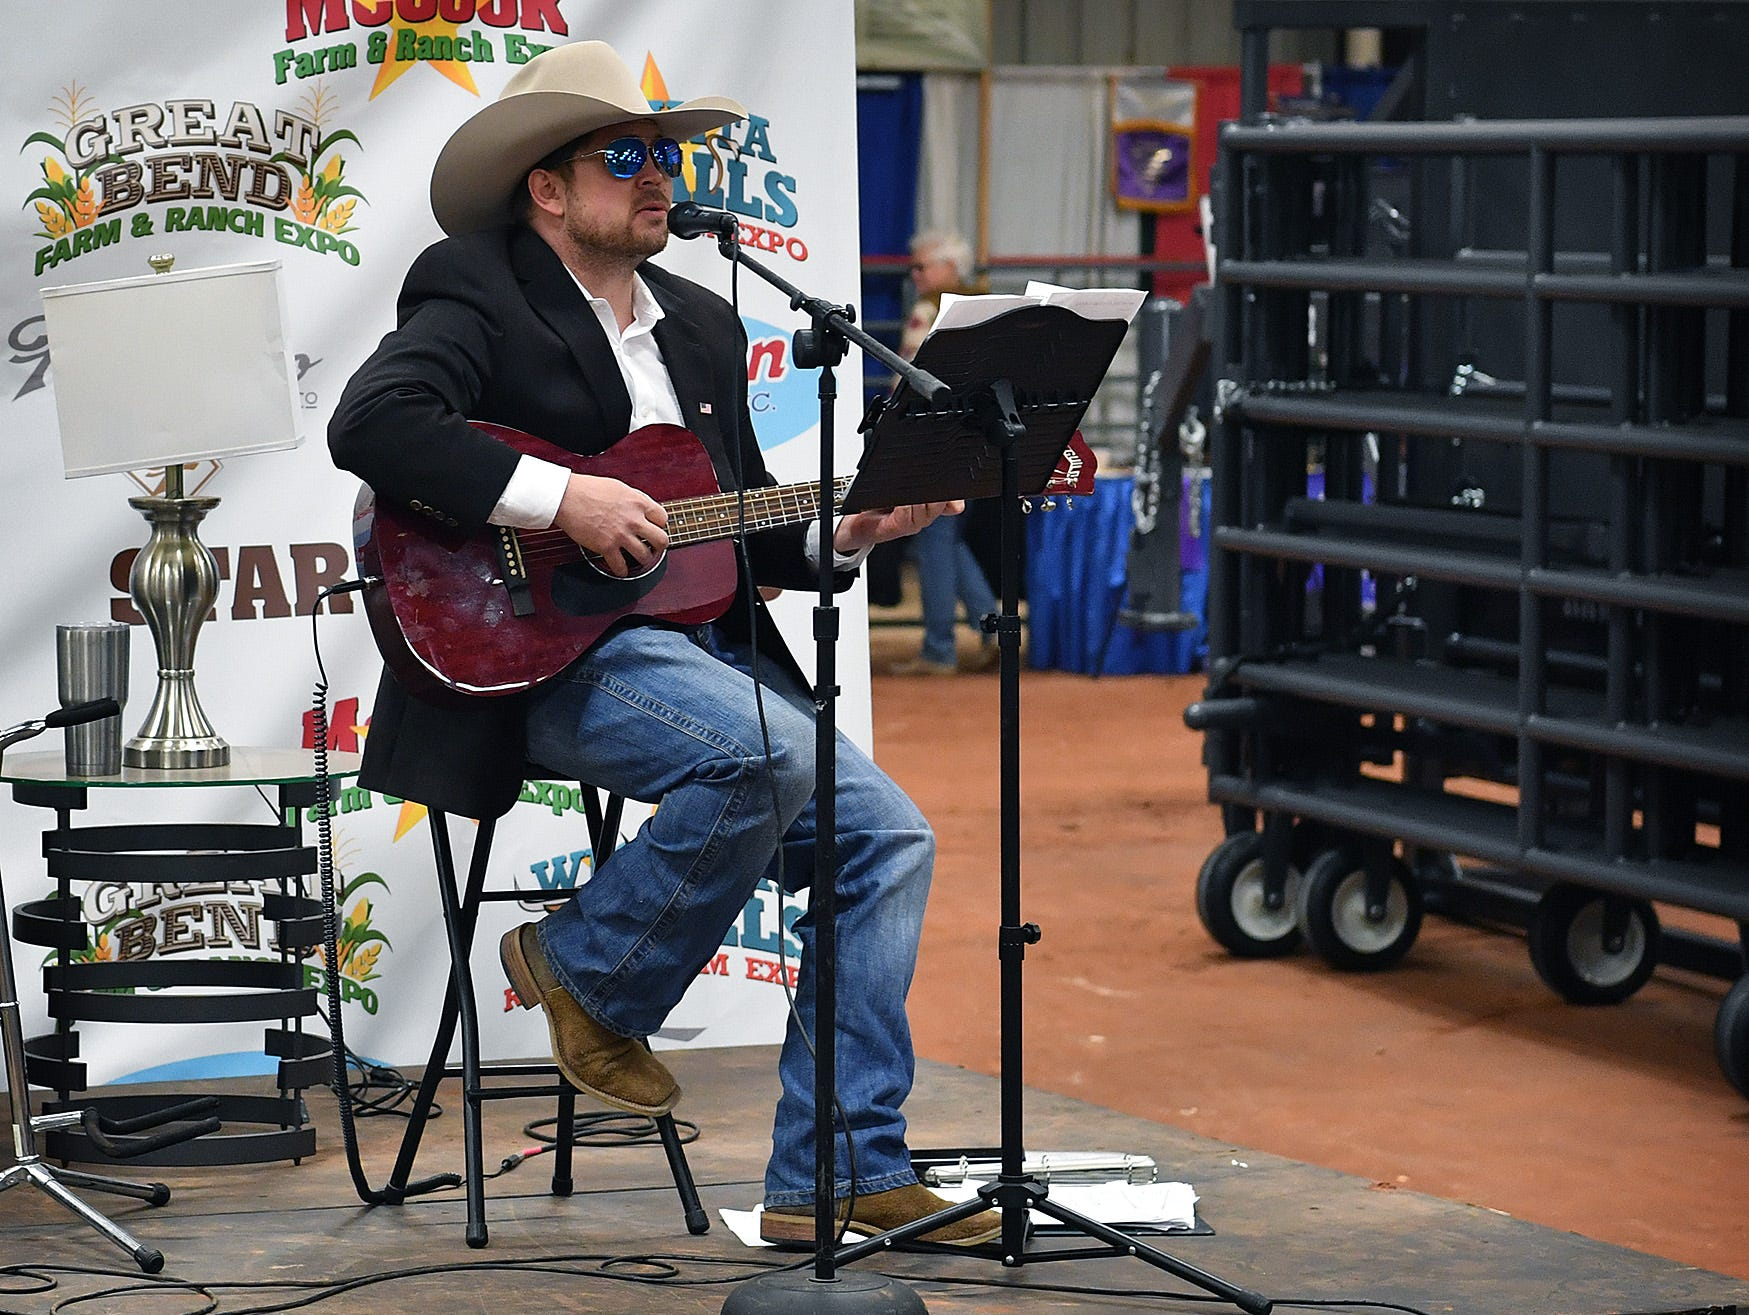 Jared Slagle provided the musical entertainment Thursday at the Wichita Falls Ranch and Farm Expo at the Bridwell Ag Center.